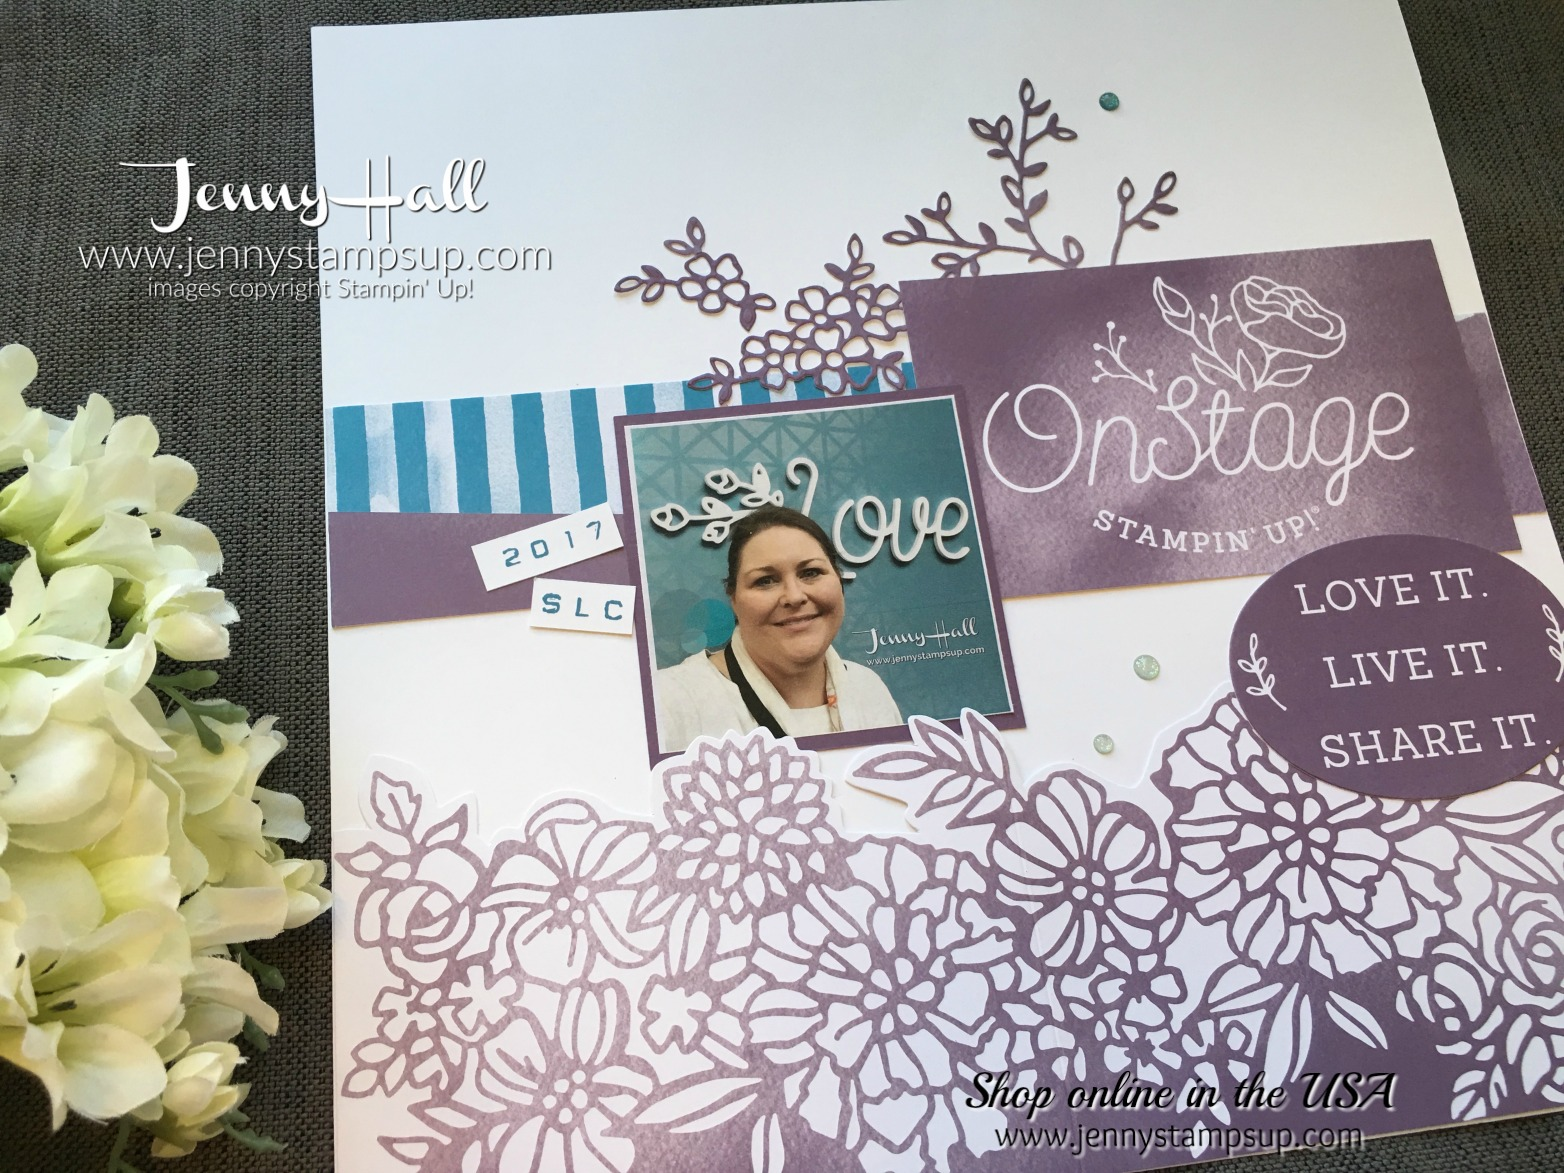 OnStage scrapbook page by Jenny Hall at www.jennyhalldesign.com for scrapbooking cardmaking, video tutorials, craft supplies and more!